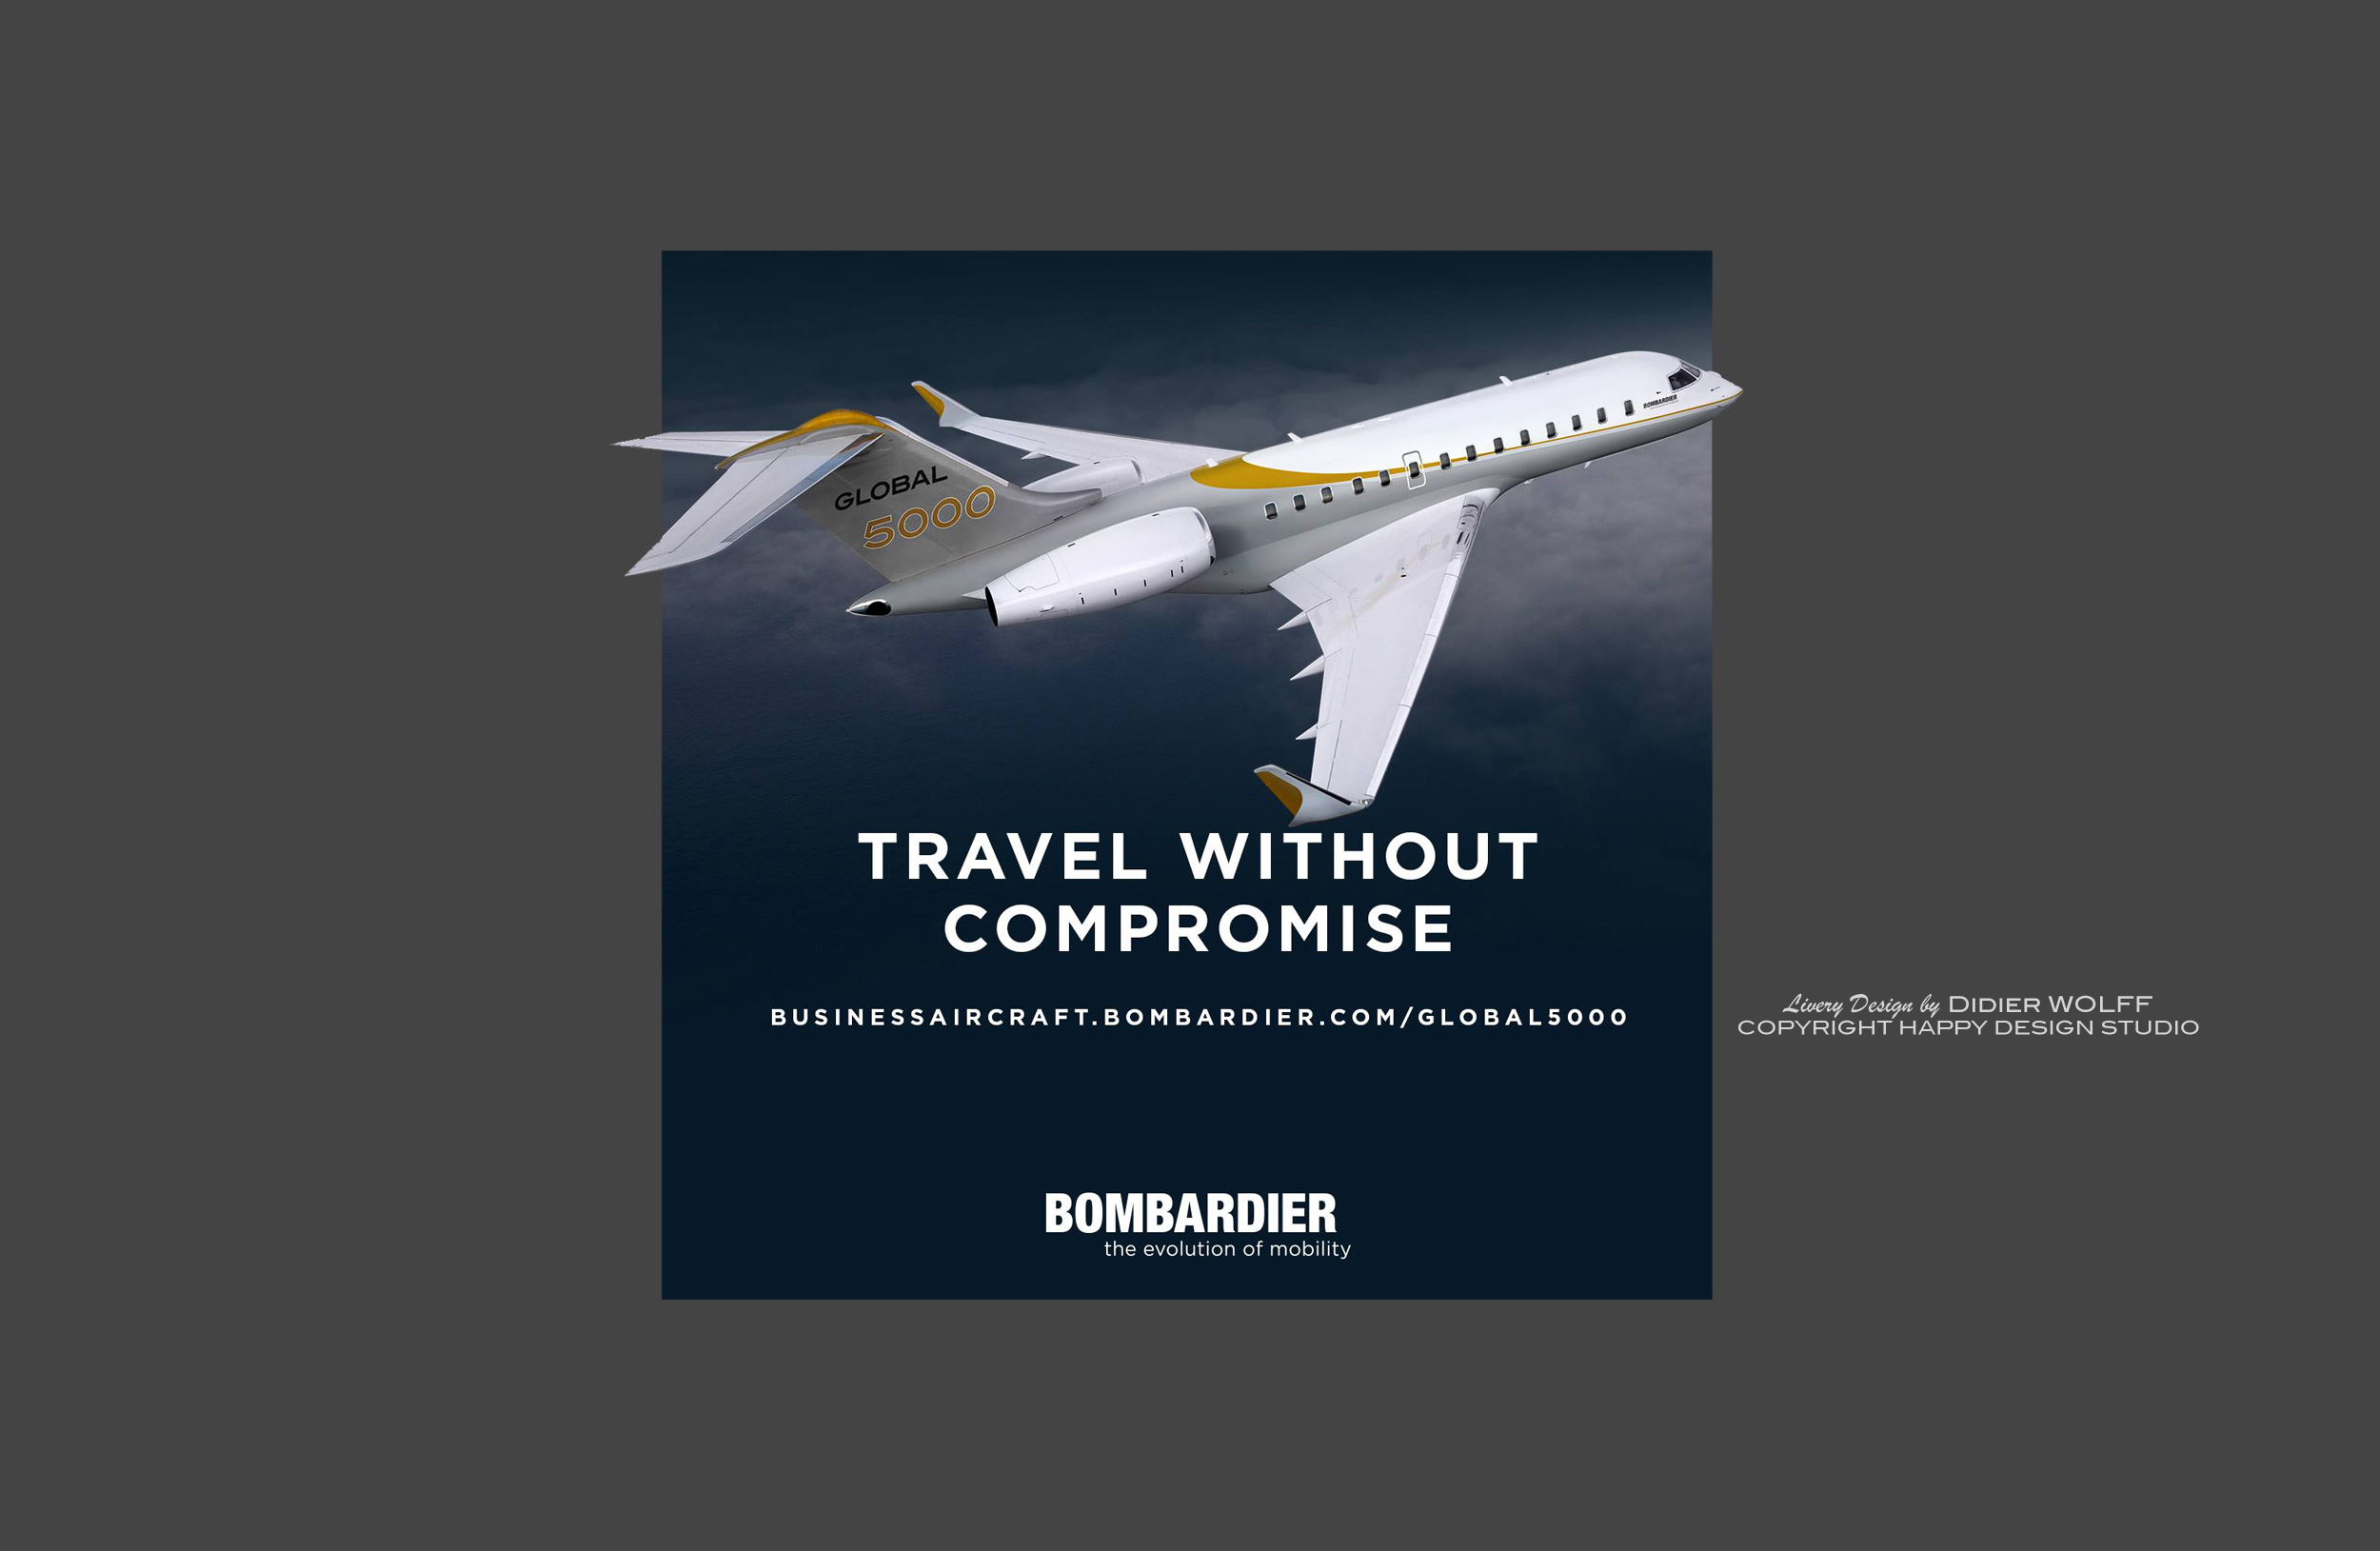 bombardier_global_5000_official_didier_wolff_happydesignstudio